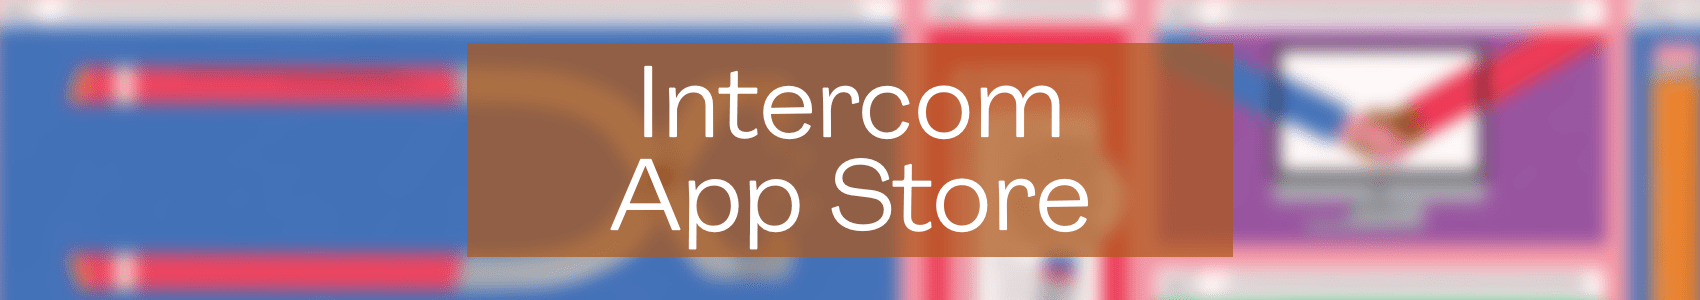 Intercom App Store